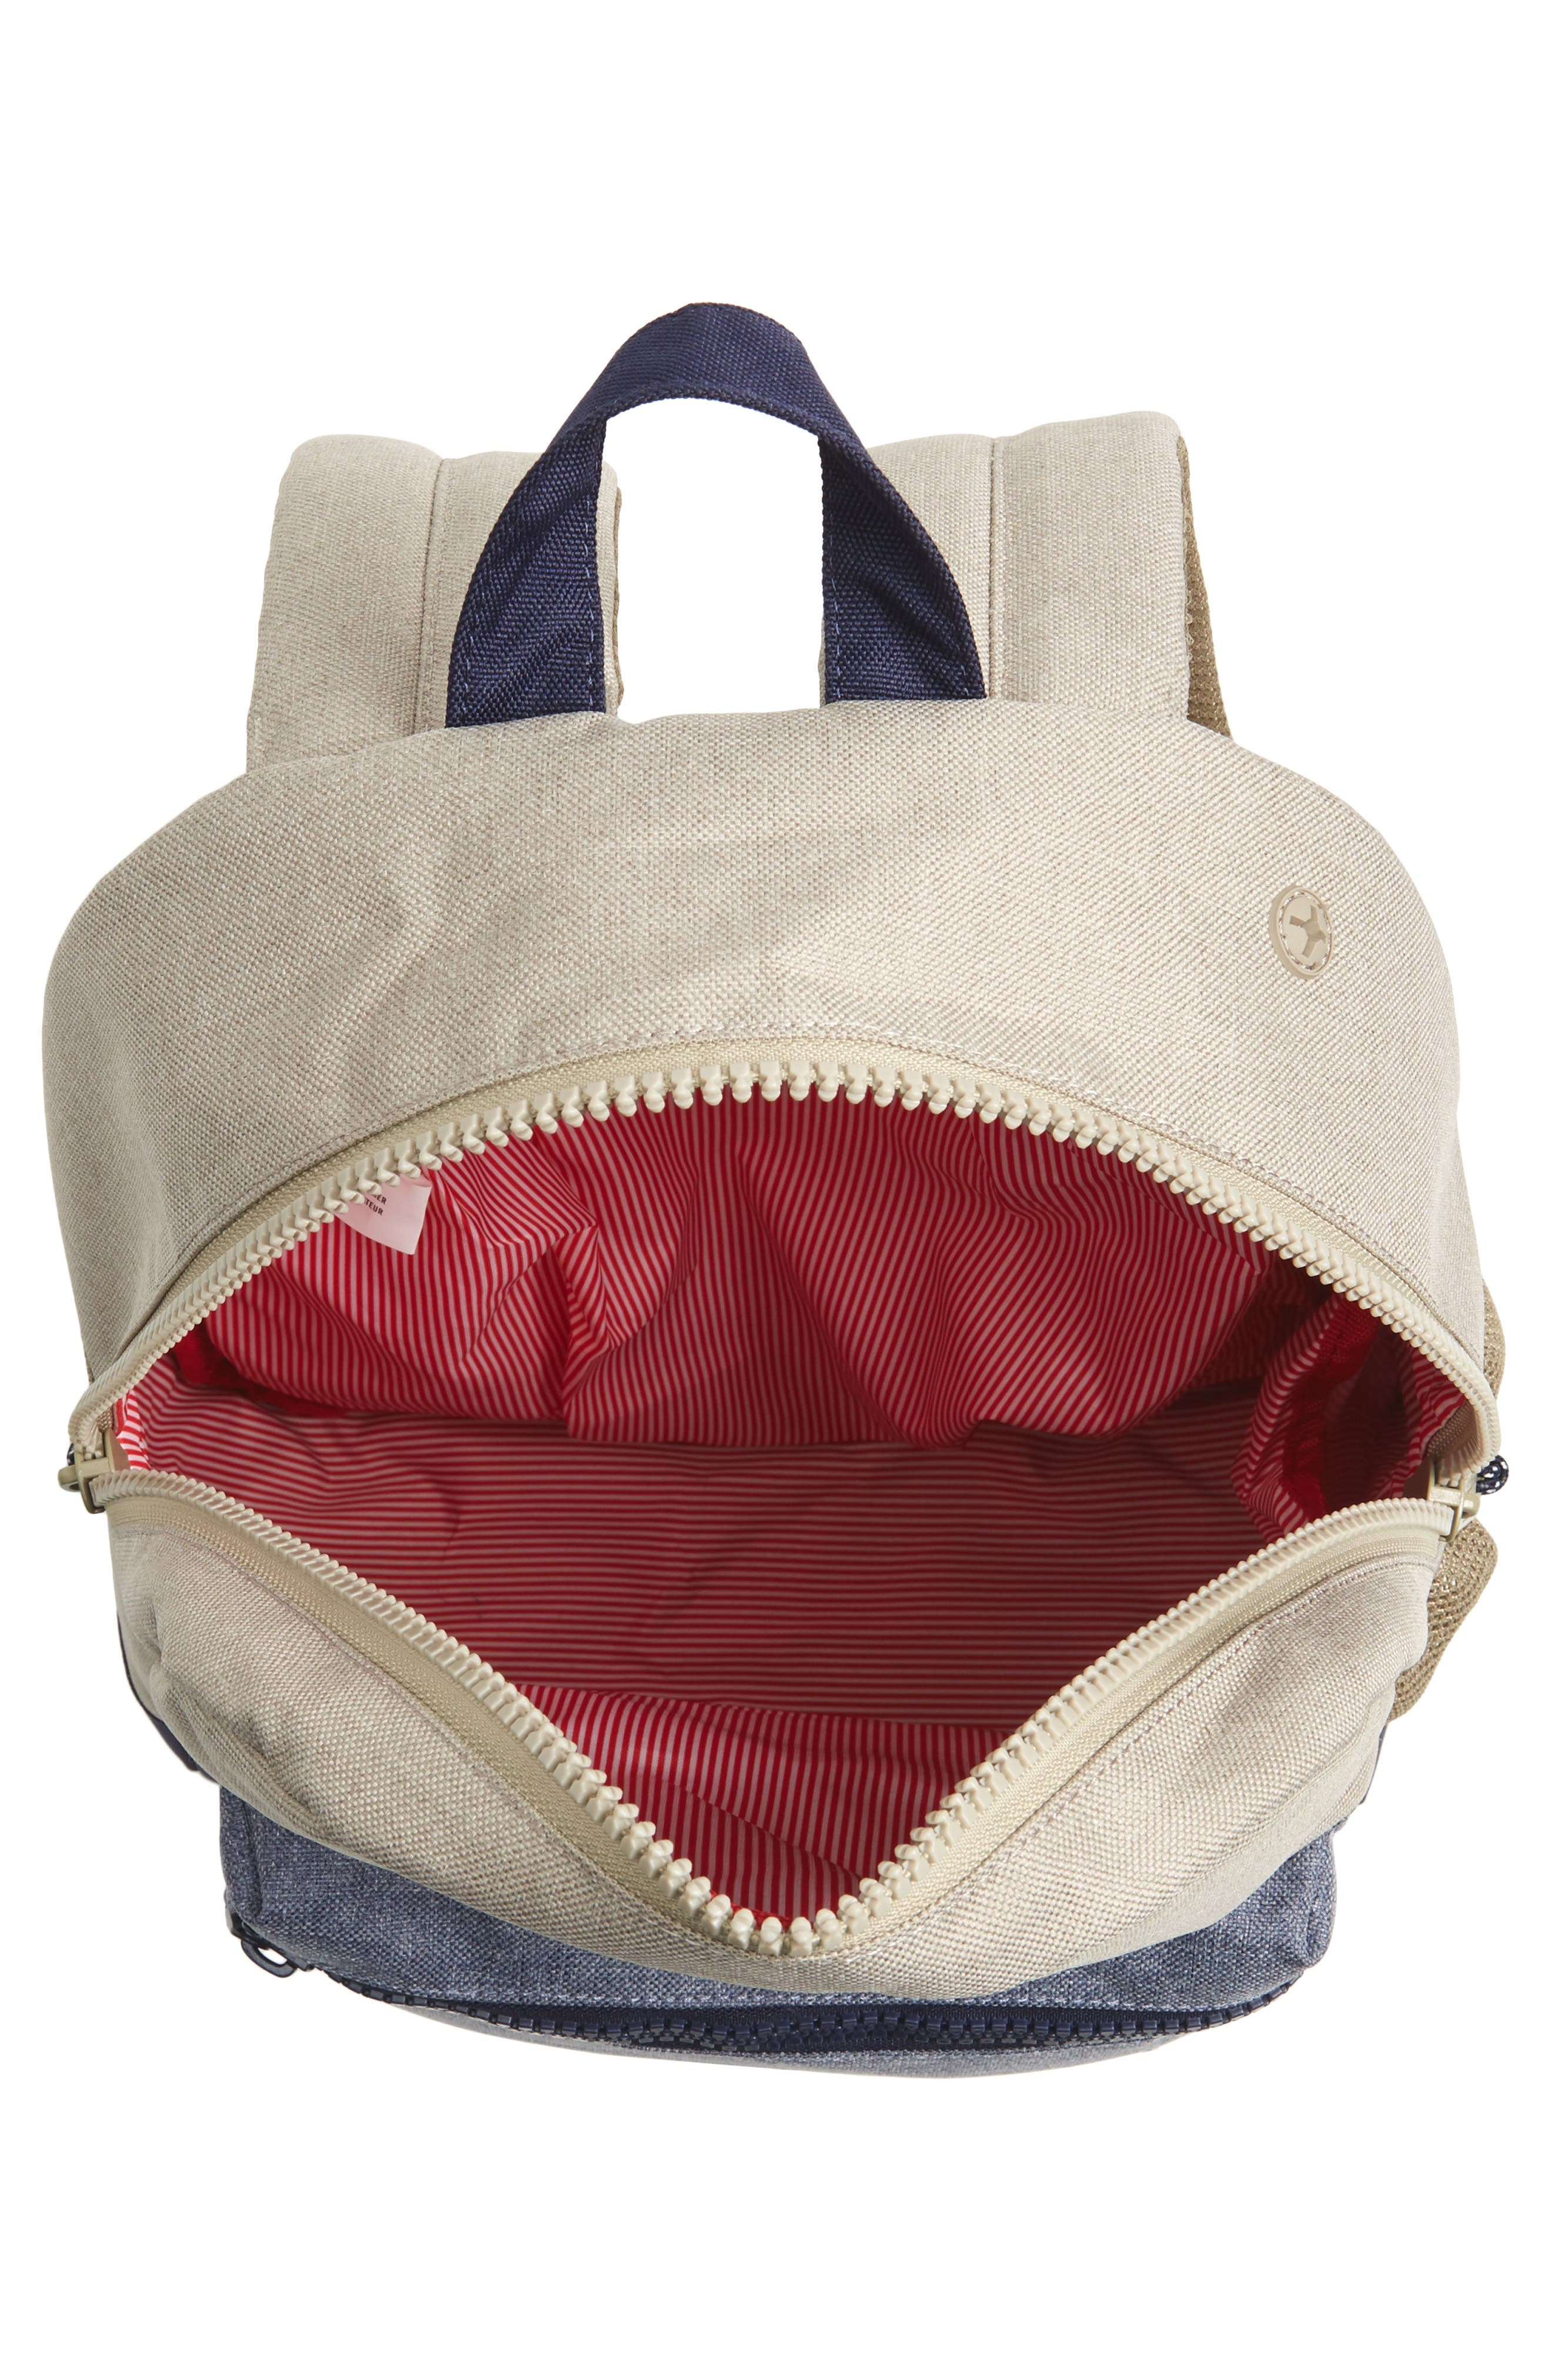 Heritage Backpack,                             Alternate thumbnail 3, color,                             250